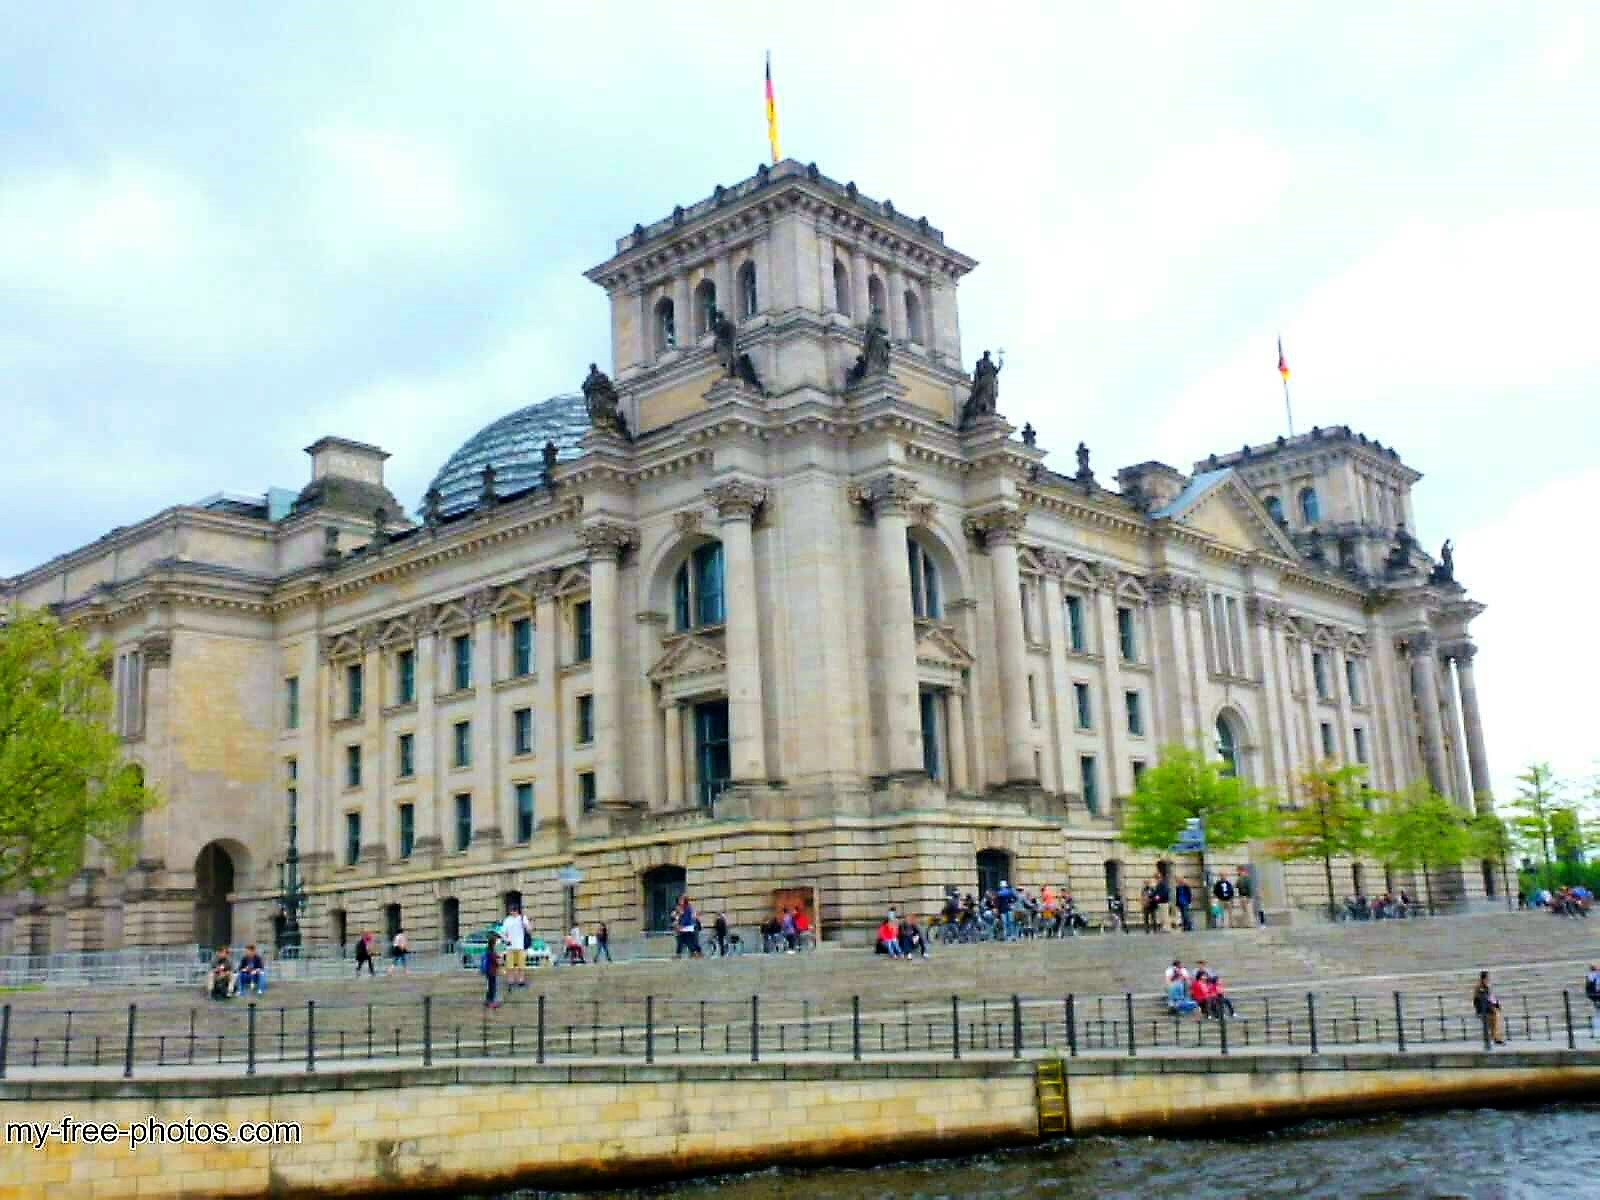 The Reichstag building.